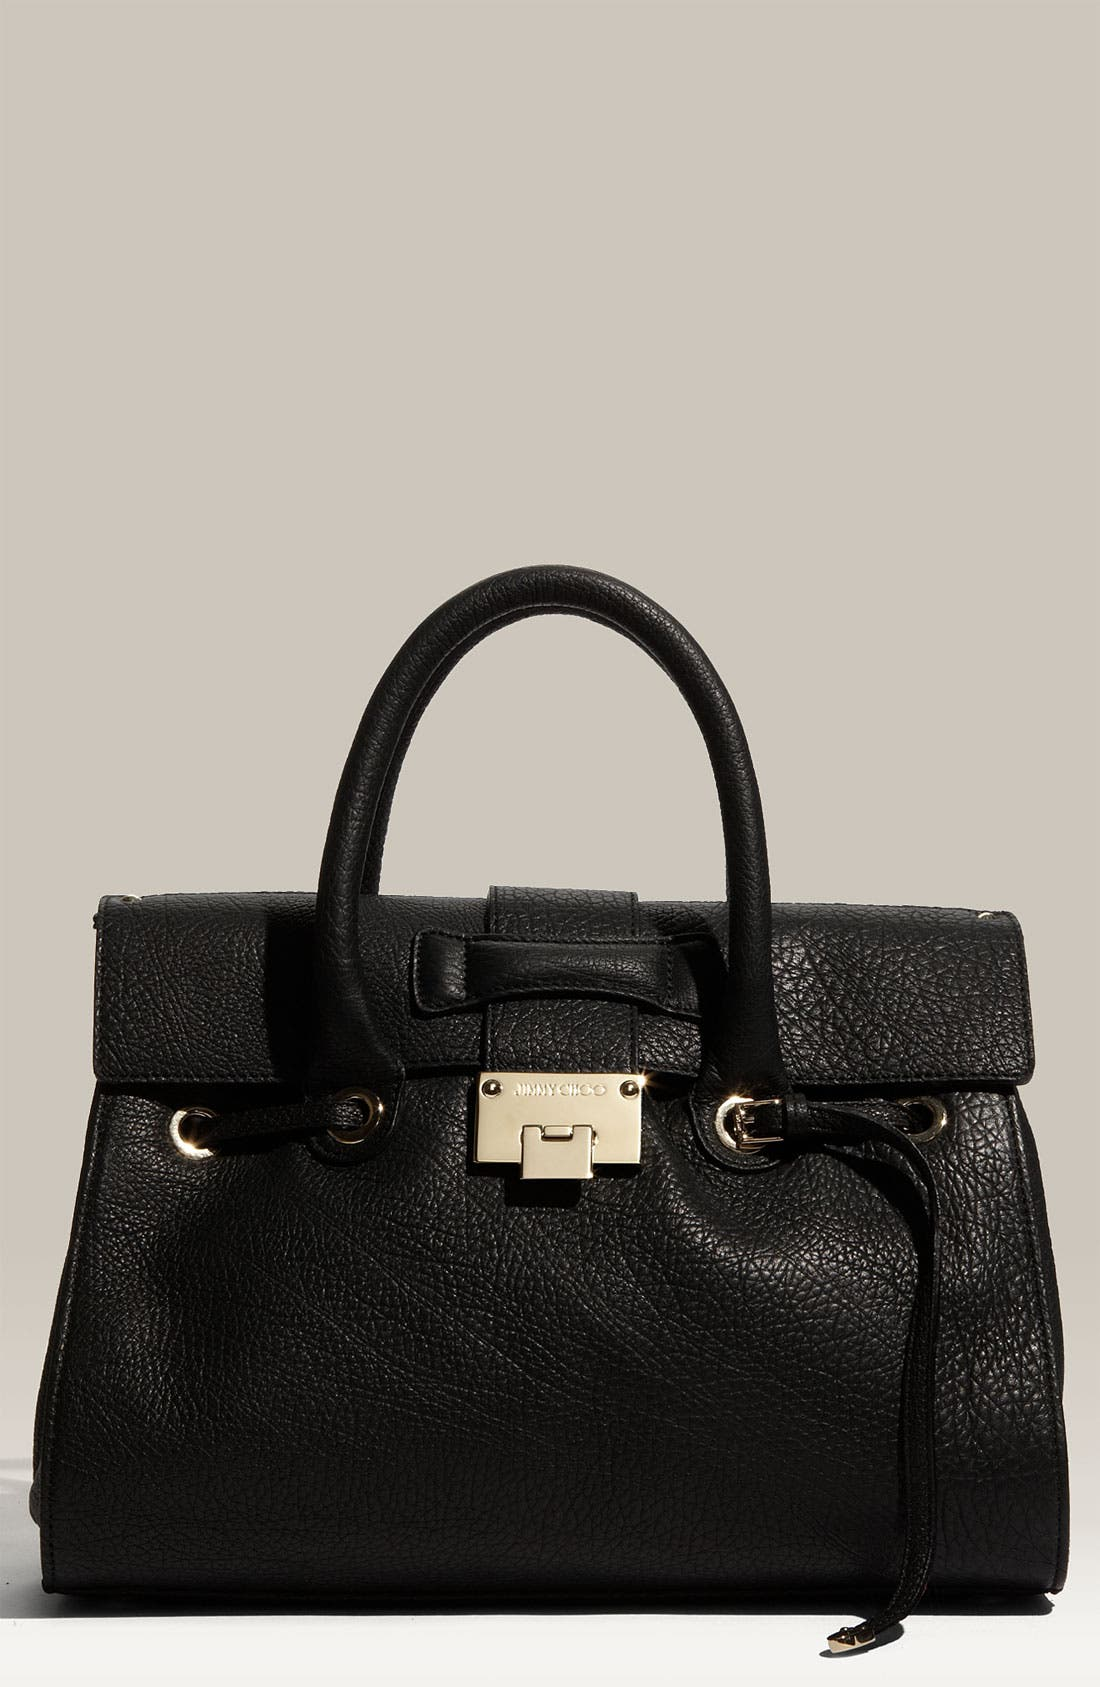 Main Image - Jimmy Choo 'Rosalie' Leather Satchel